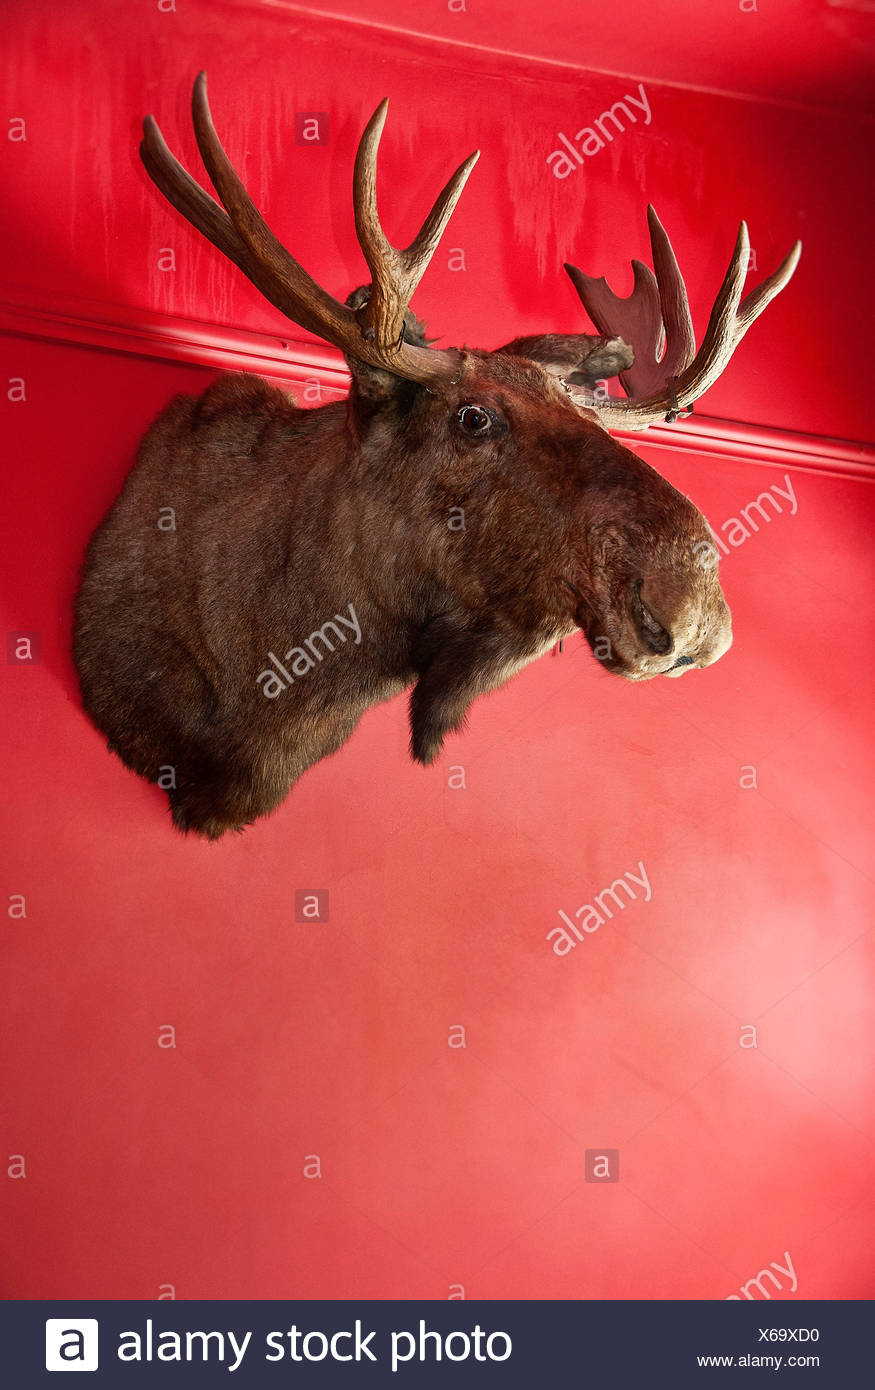 Excellent Moose Head Stock Photos & Moose Head Stock Images - Alamy NI12